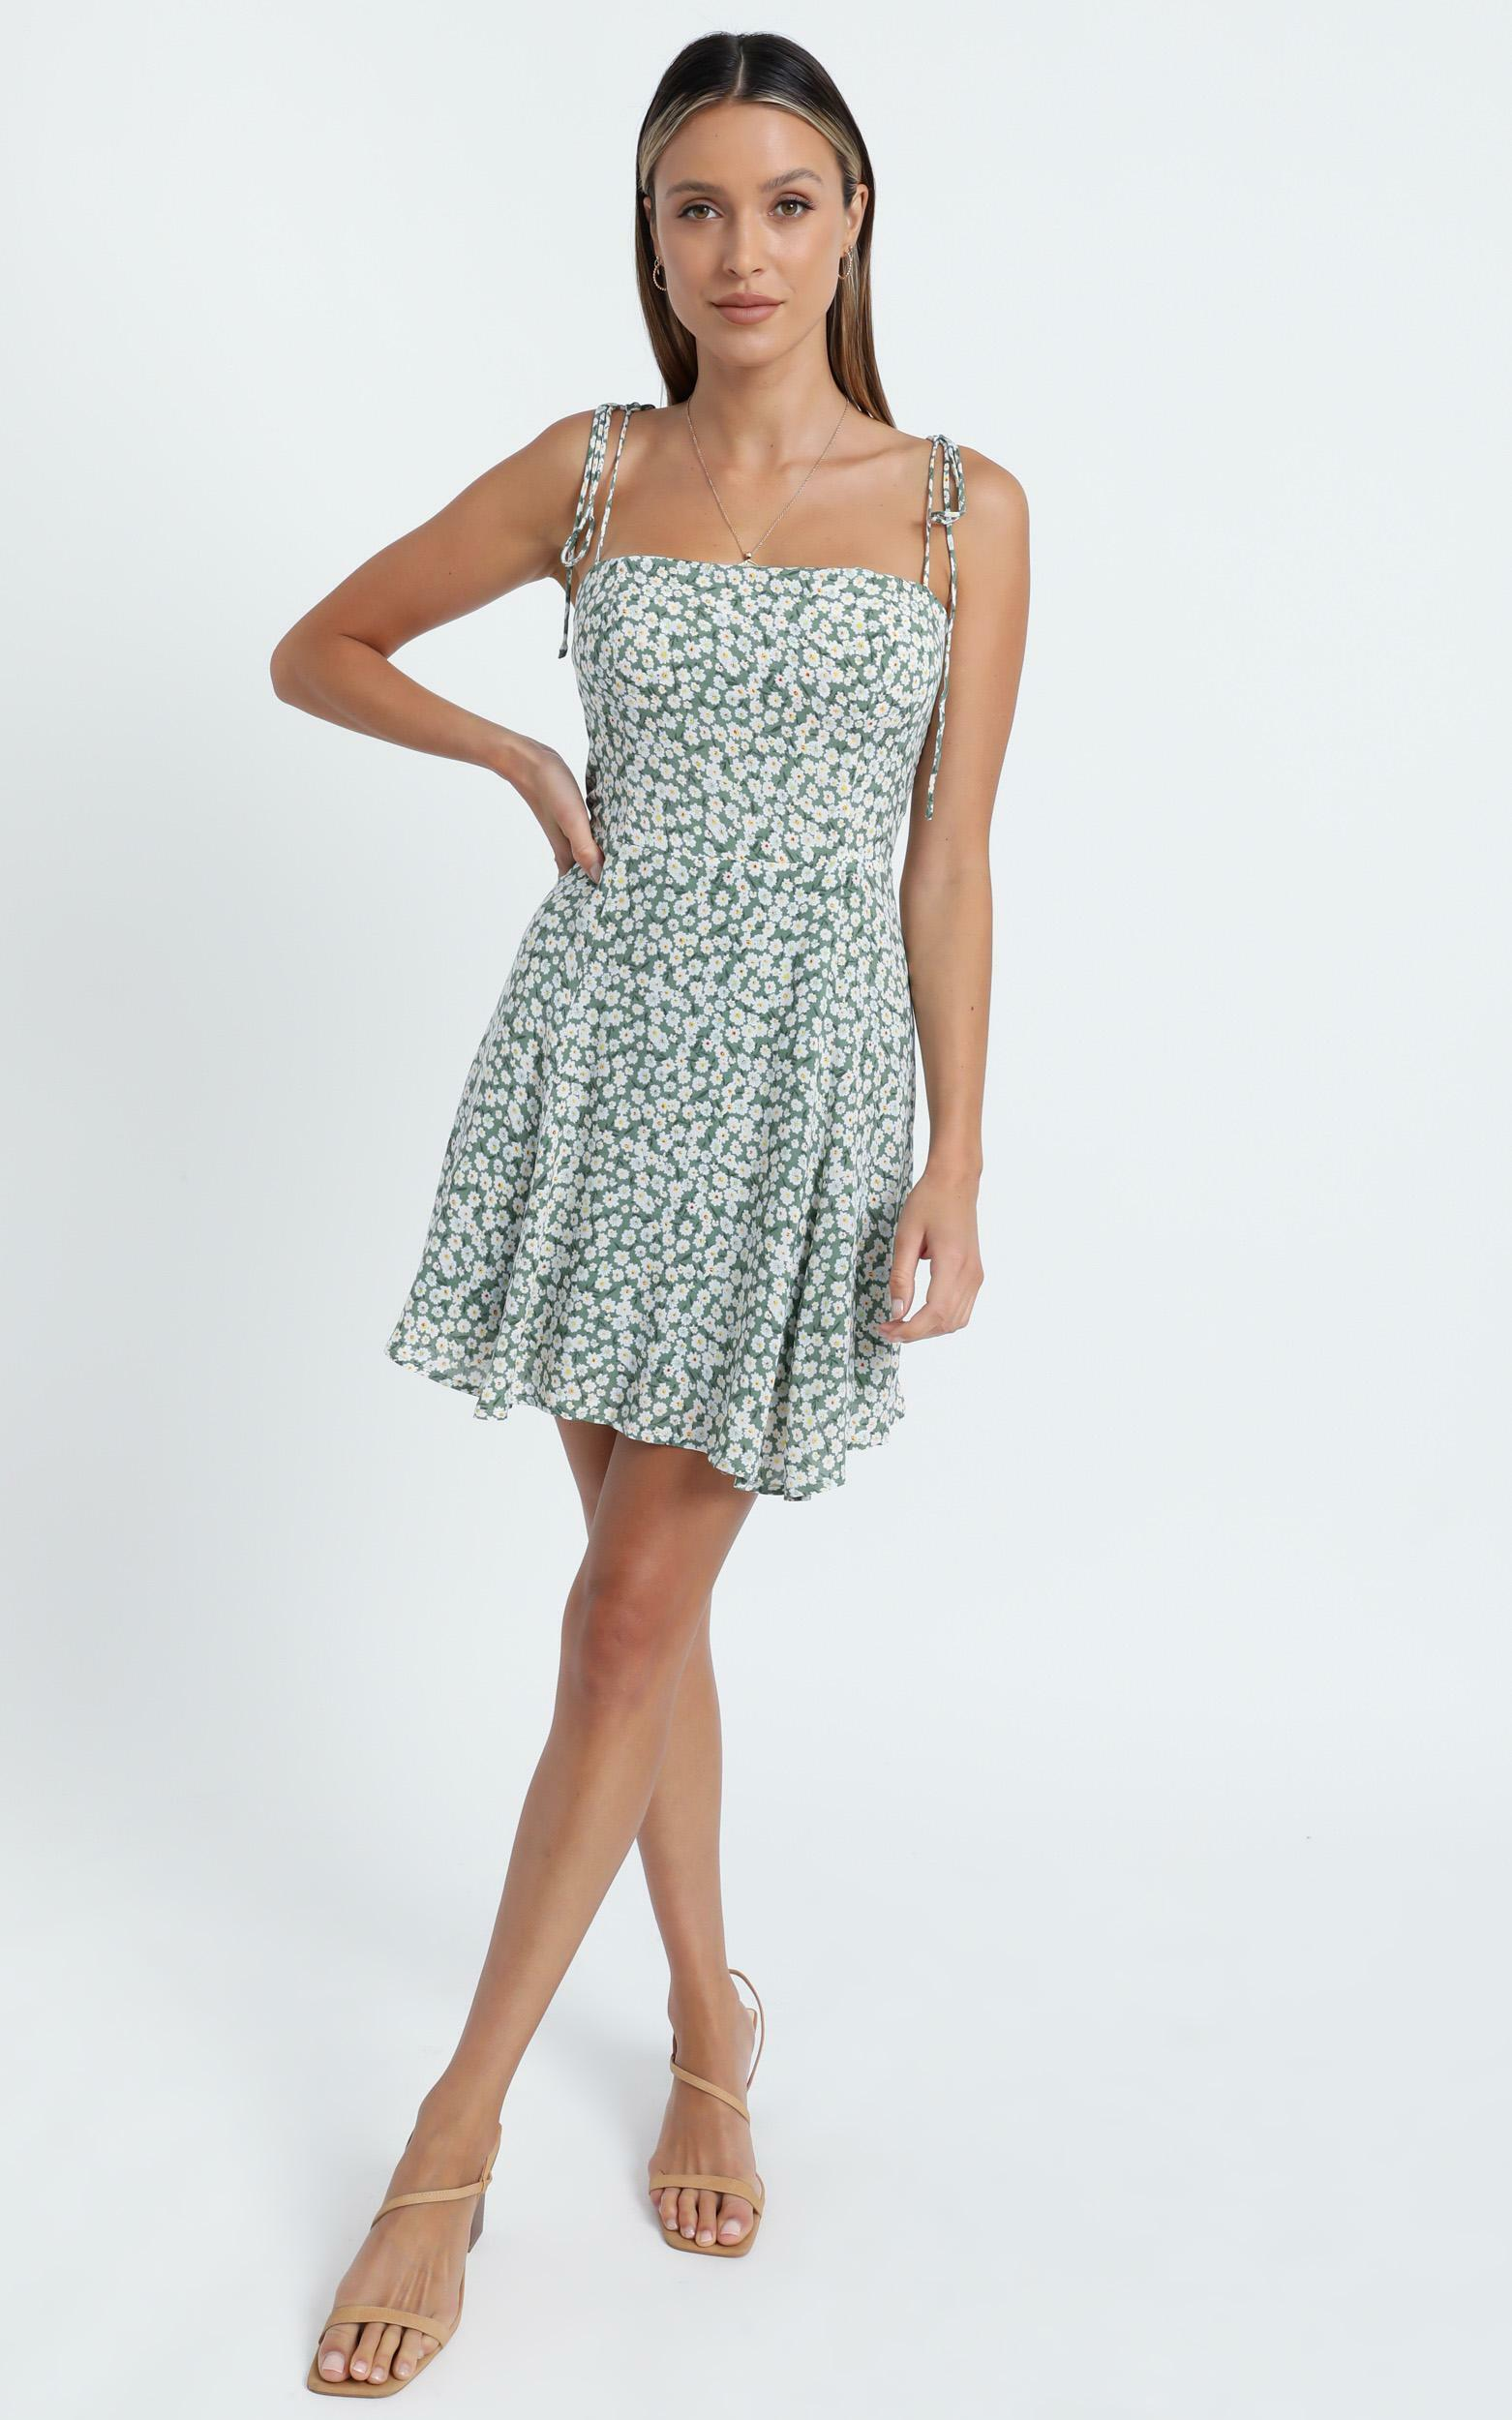 Roll With Me Dress in Sage Floral - 6 (XS), Sage, hi-res image number null